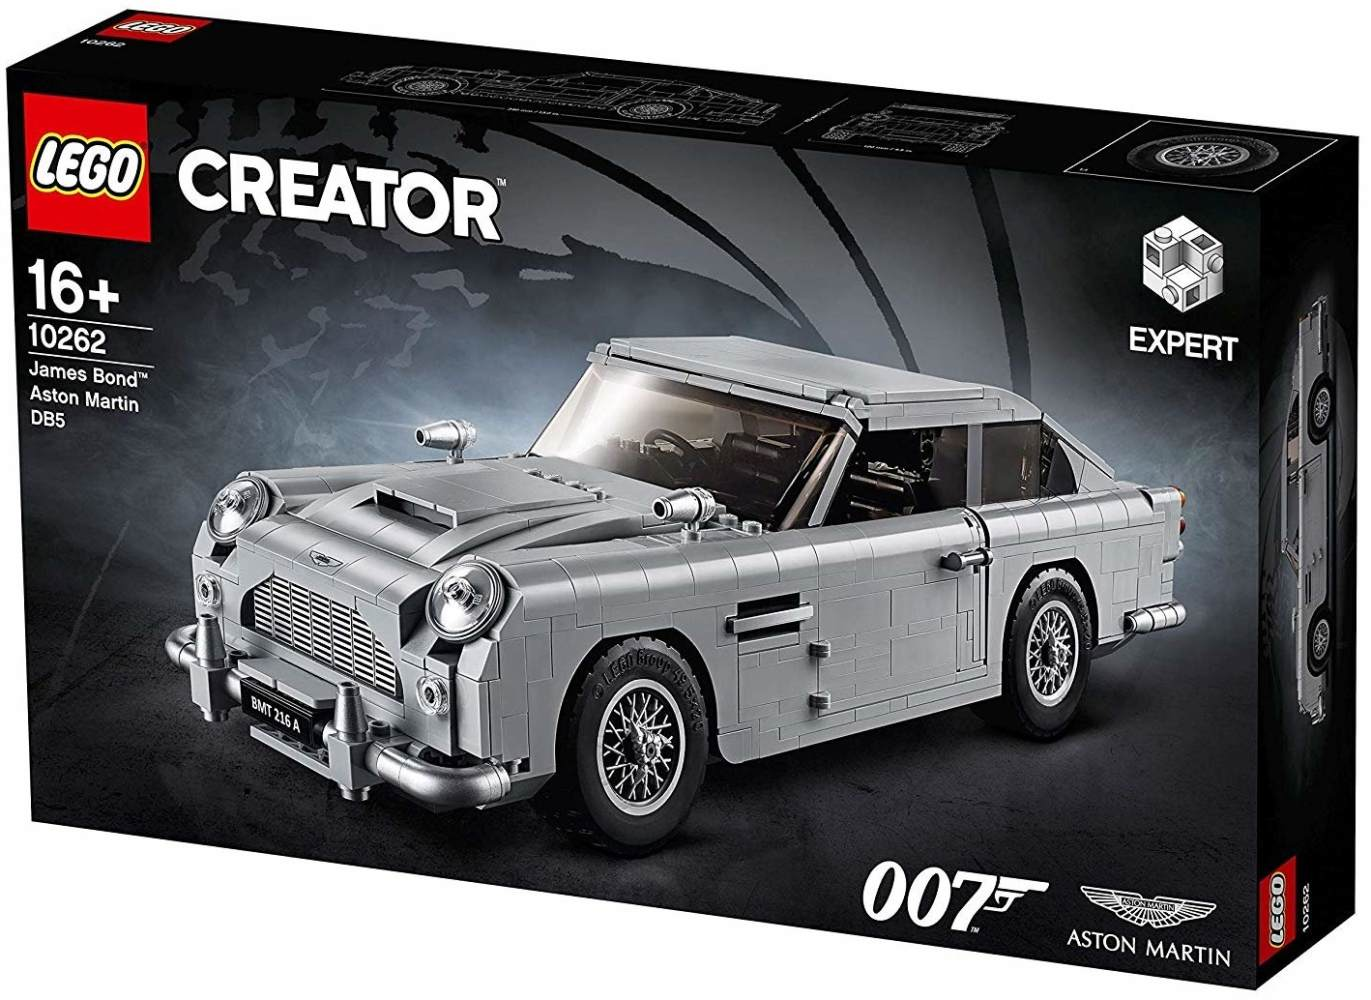 LEGO Creator 10262 James Bond™ Aston Martin DB5, seltene Sets Bild 1